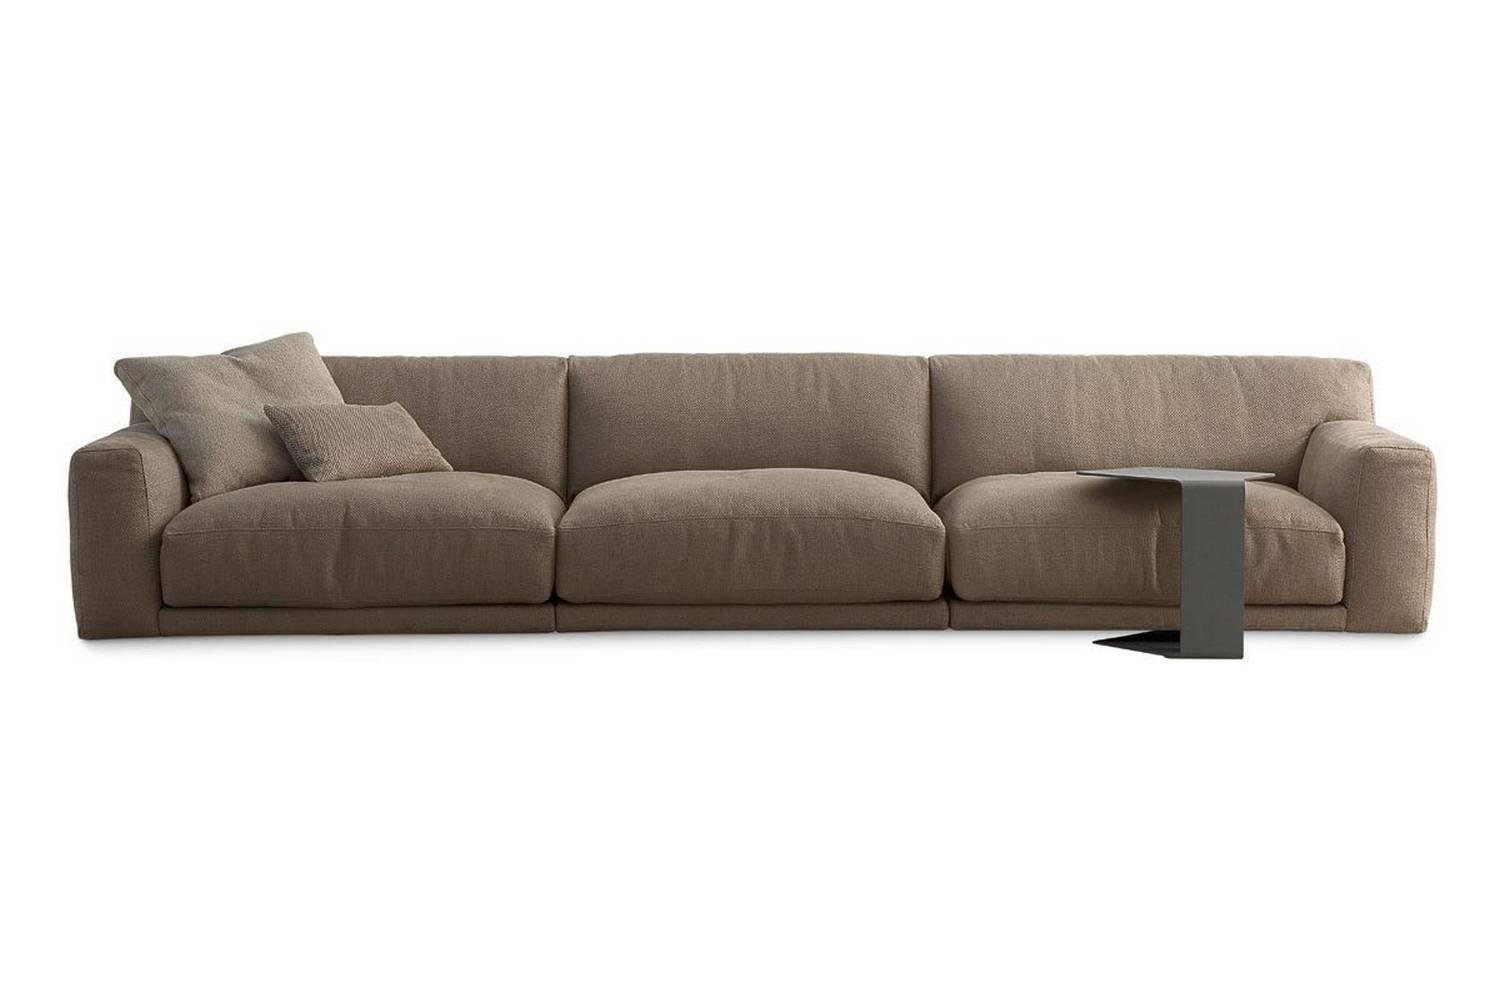 Paris-Seoul Sofa by J. M. Massaud for Poliform